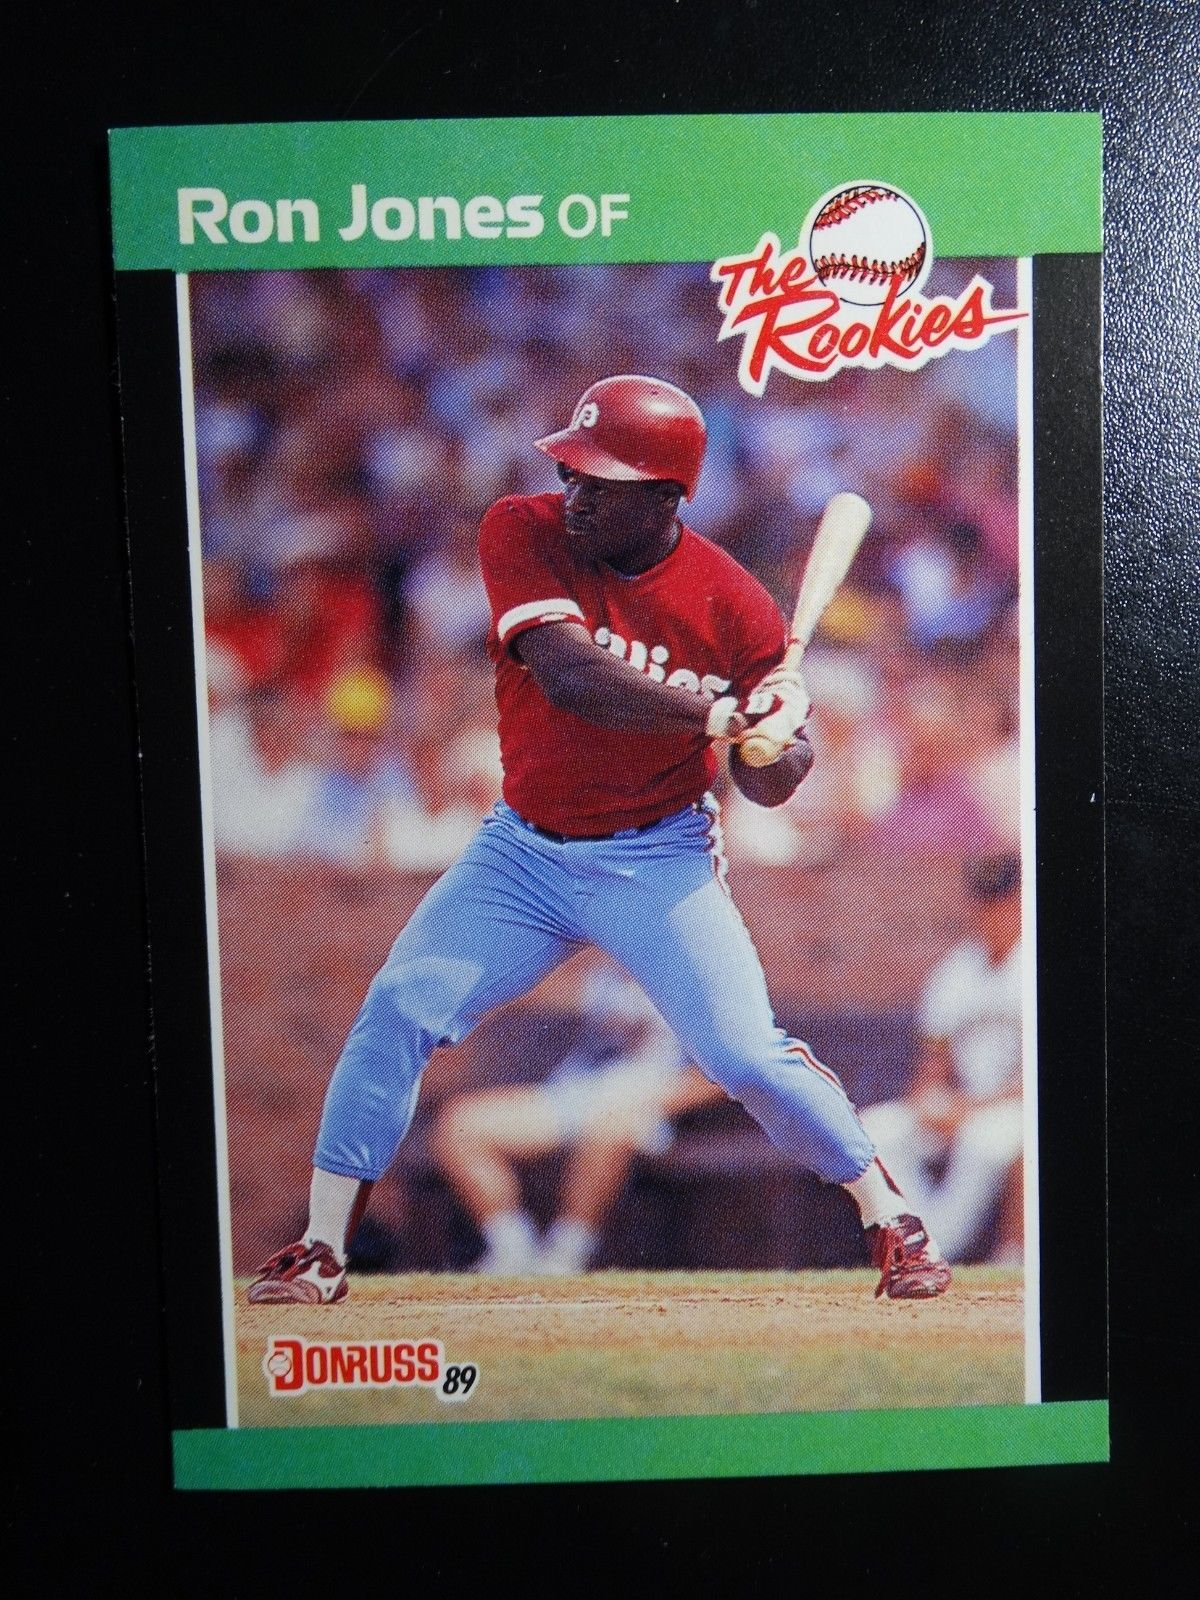 Primary image for 1989 Donruss Rookies #42 Ron Jones Philadelphia Phillies Baseball RC Rookie Card